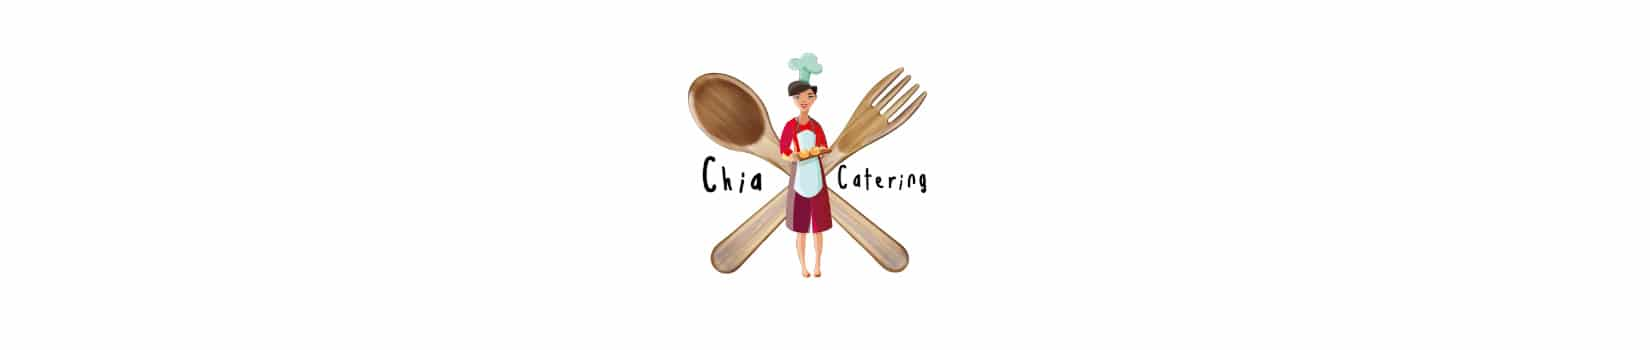 Chia Catering